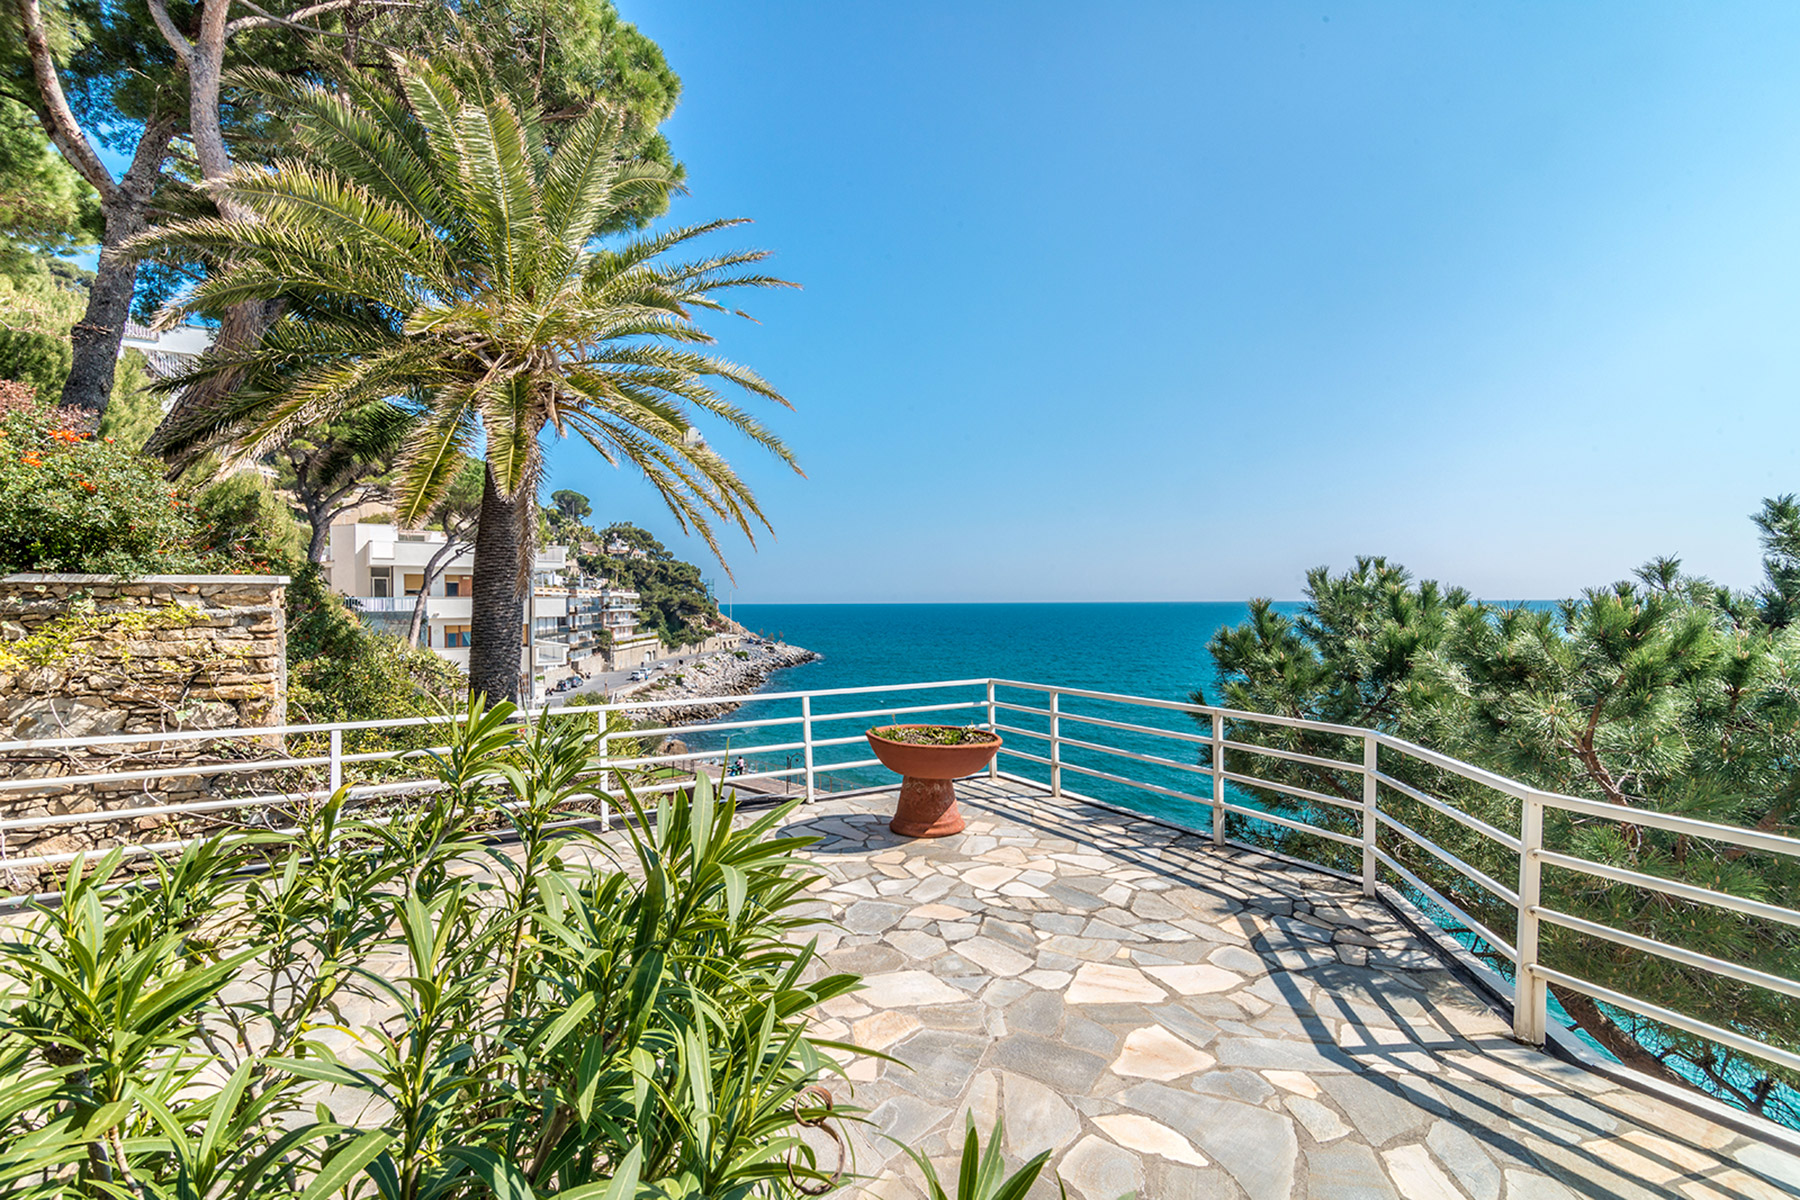 Additional photo for property listing at Magnificent seaview Villa in Alassio Passeggiata Luigi Cadorna Alassio, Savona 17021 Italia